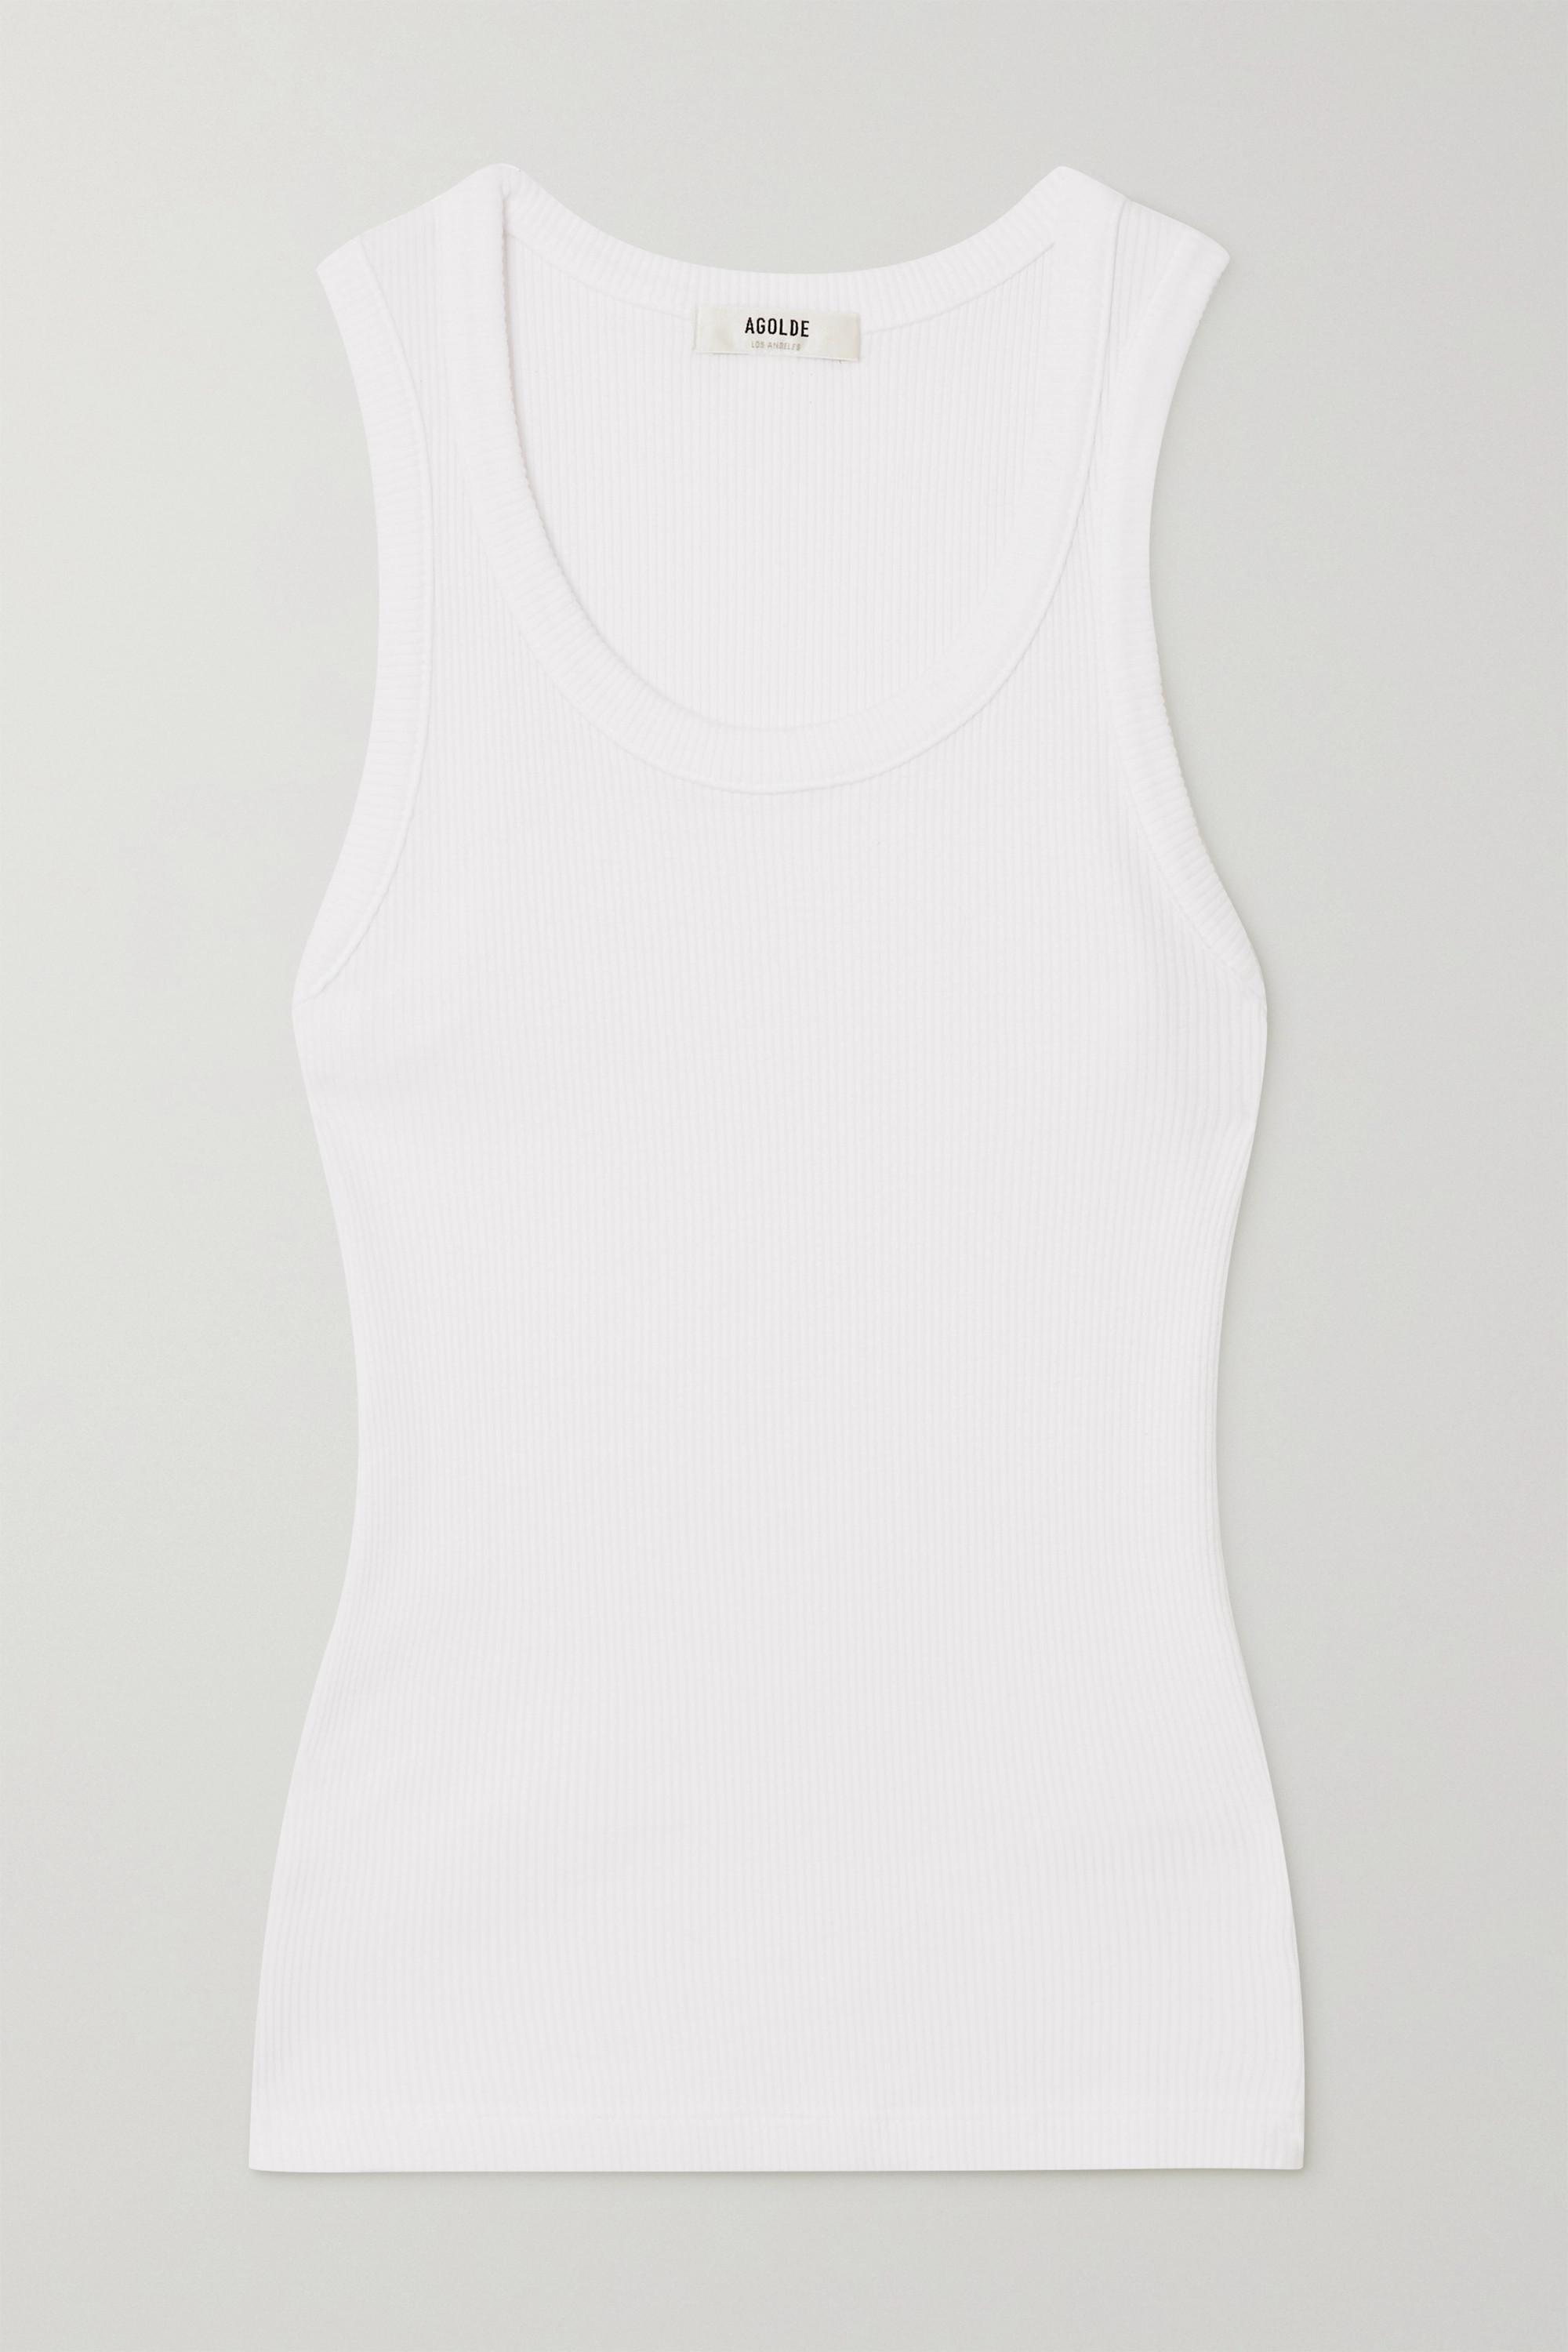 AGOLDE Poppy ribbed stretch organic cotton and Tencel-blend jersey tank